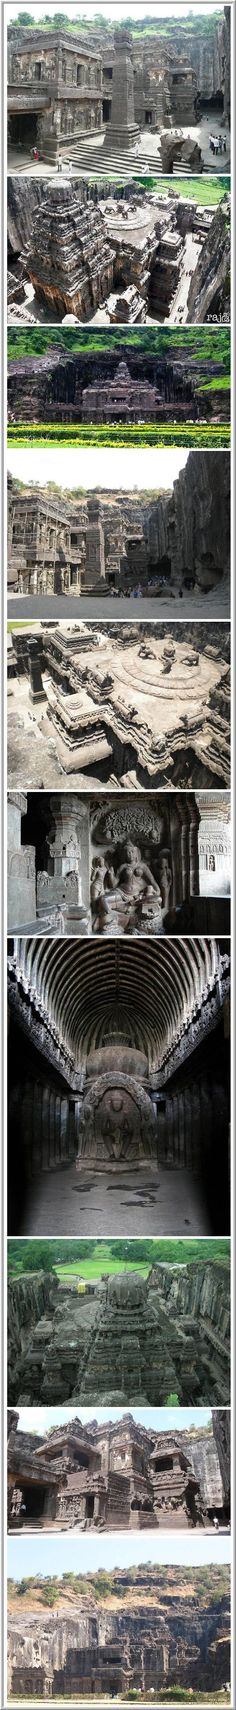 Ajanta & Ellora Caves: Cave Hindu temples of India. In the Indian state of Maharashtra is the village of Ajanta & Ellora with incredible Temples carved into the mountain Charanandri by ancient Indian architects & engineers. Ellora – the official World Heritage Site by UNESCO. The caves consist of 27 Hindu temples built during the 100BC – a sign of Hindu religious harmony that has prevailed in India.